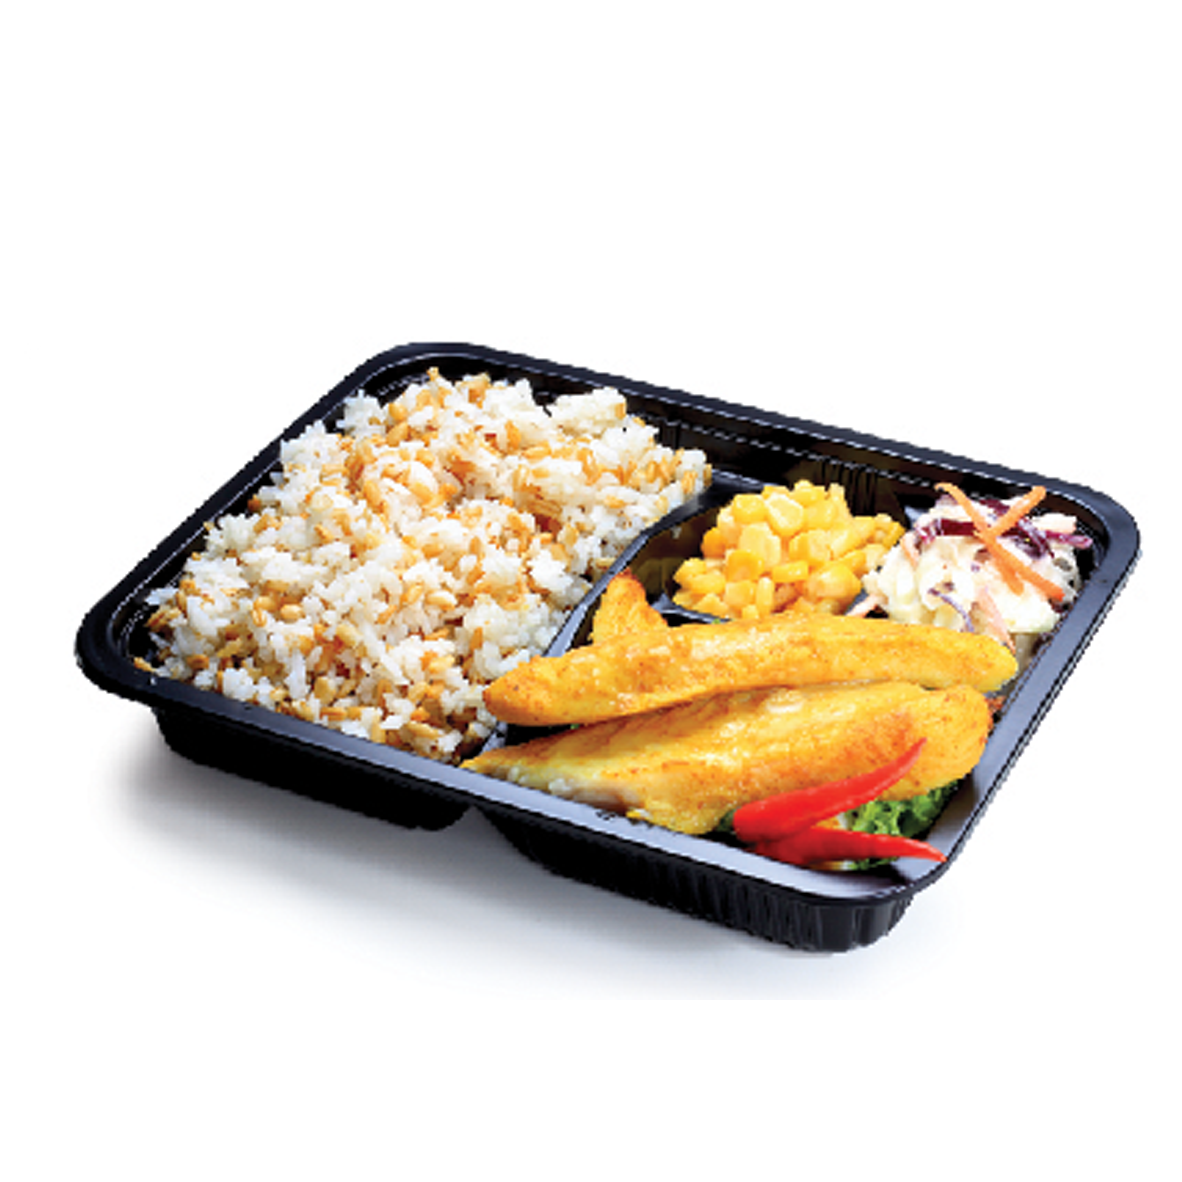 1 x Bento Set Meal + Cold Drink + Dessert